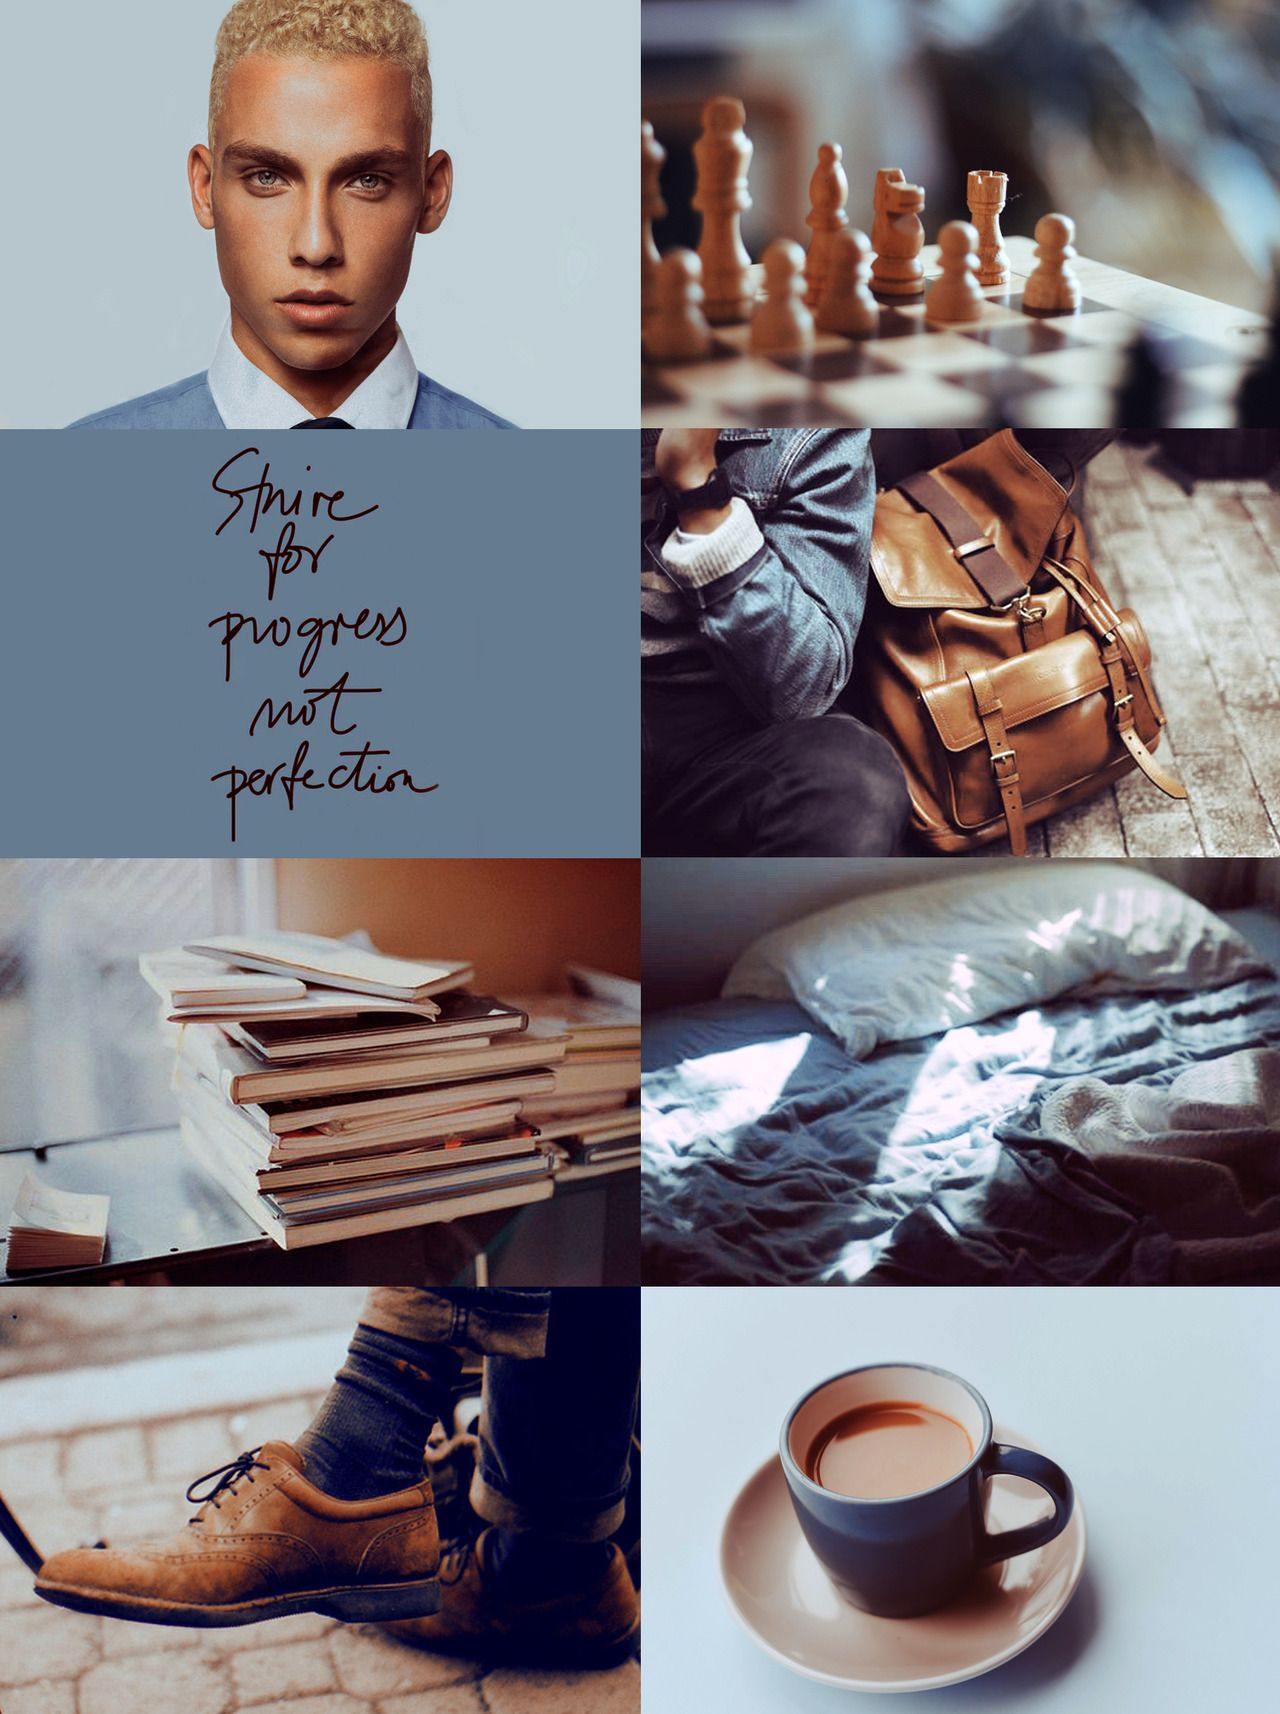 Harry Potter Moodboards 2 10 Dumbledore S Army Members Terry Boot Harry Potter Comics Ravenclaw Aesthetic Harry